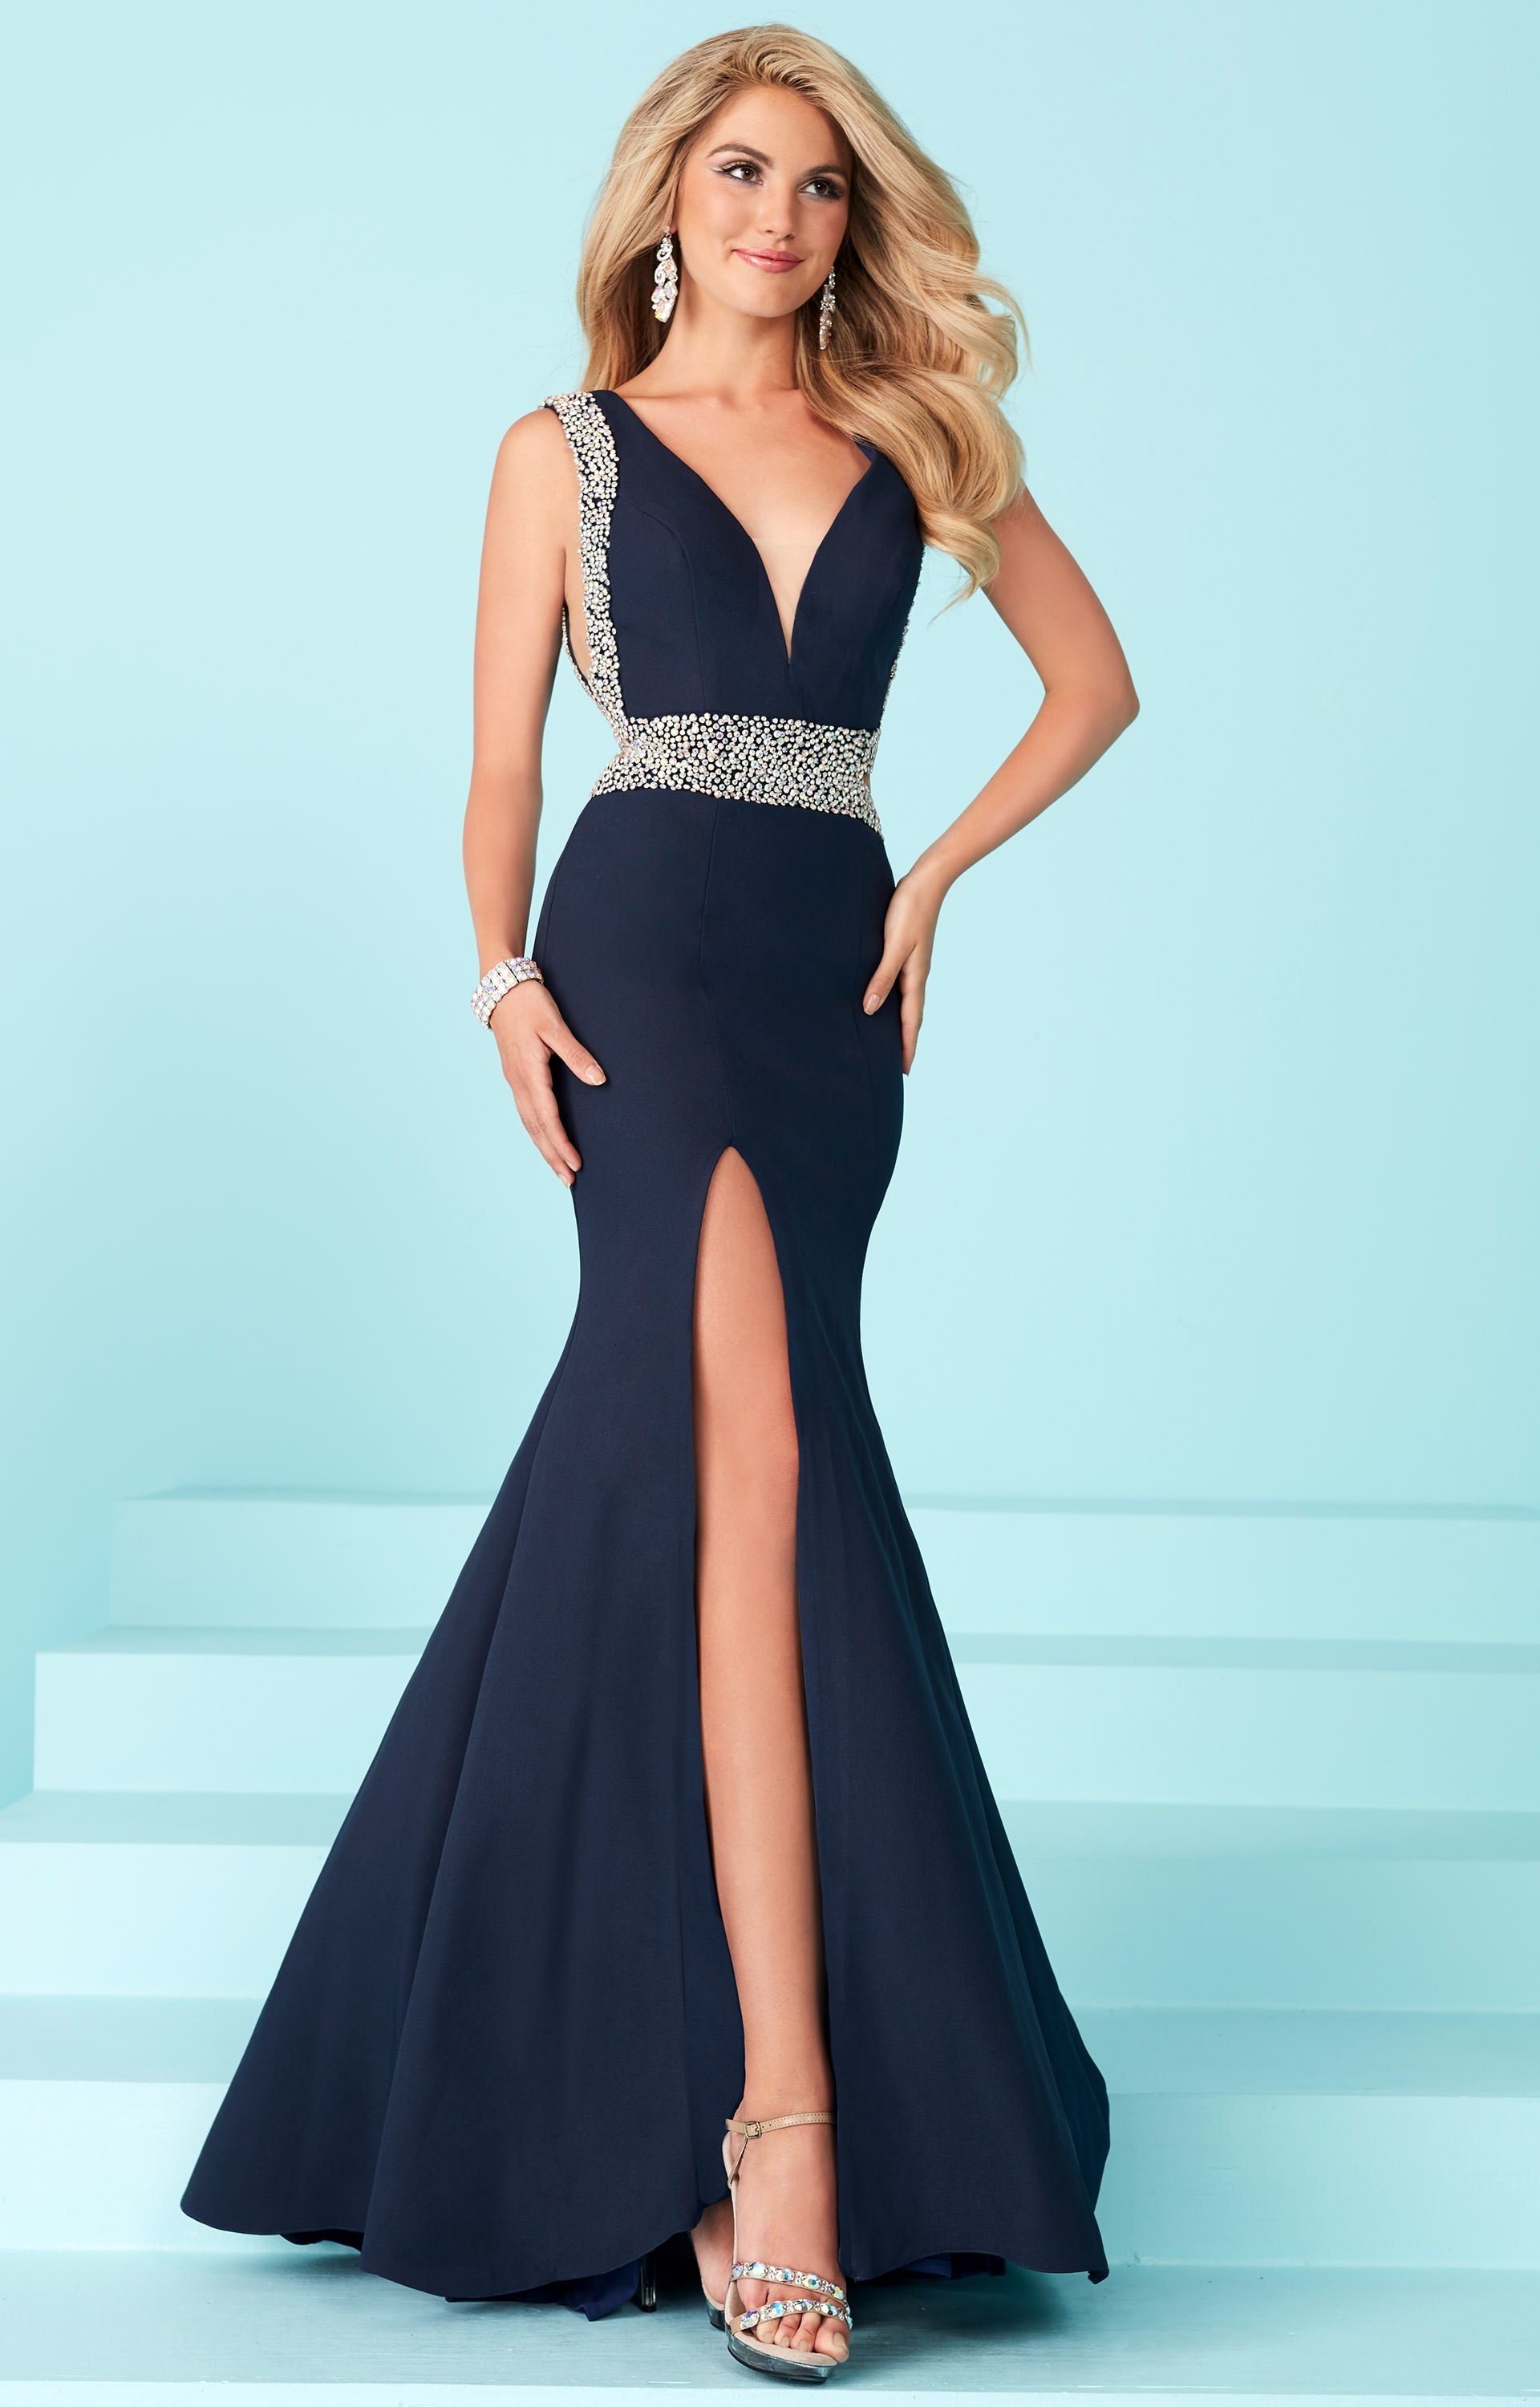 Tiffany Designs 16215 - V Neck Thin Straps Fitted Mermaid Dress Prom ...